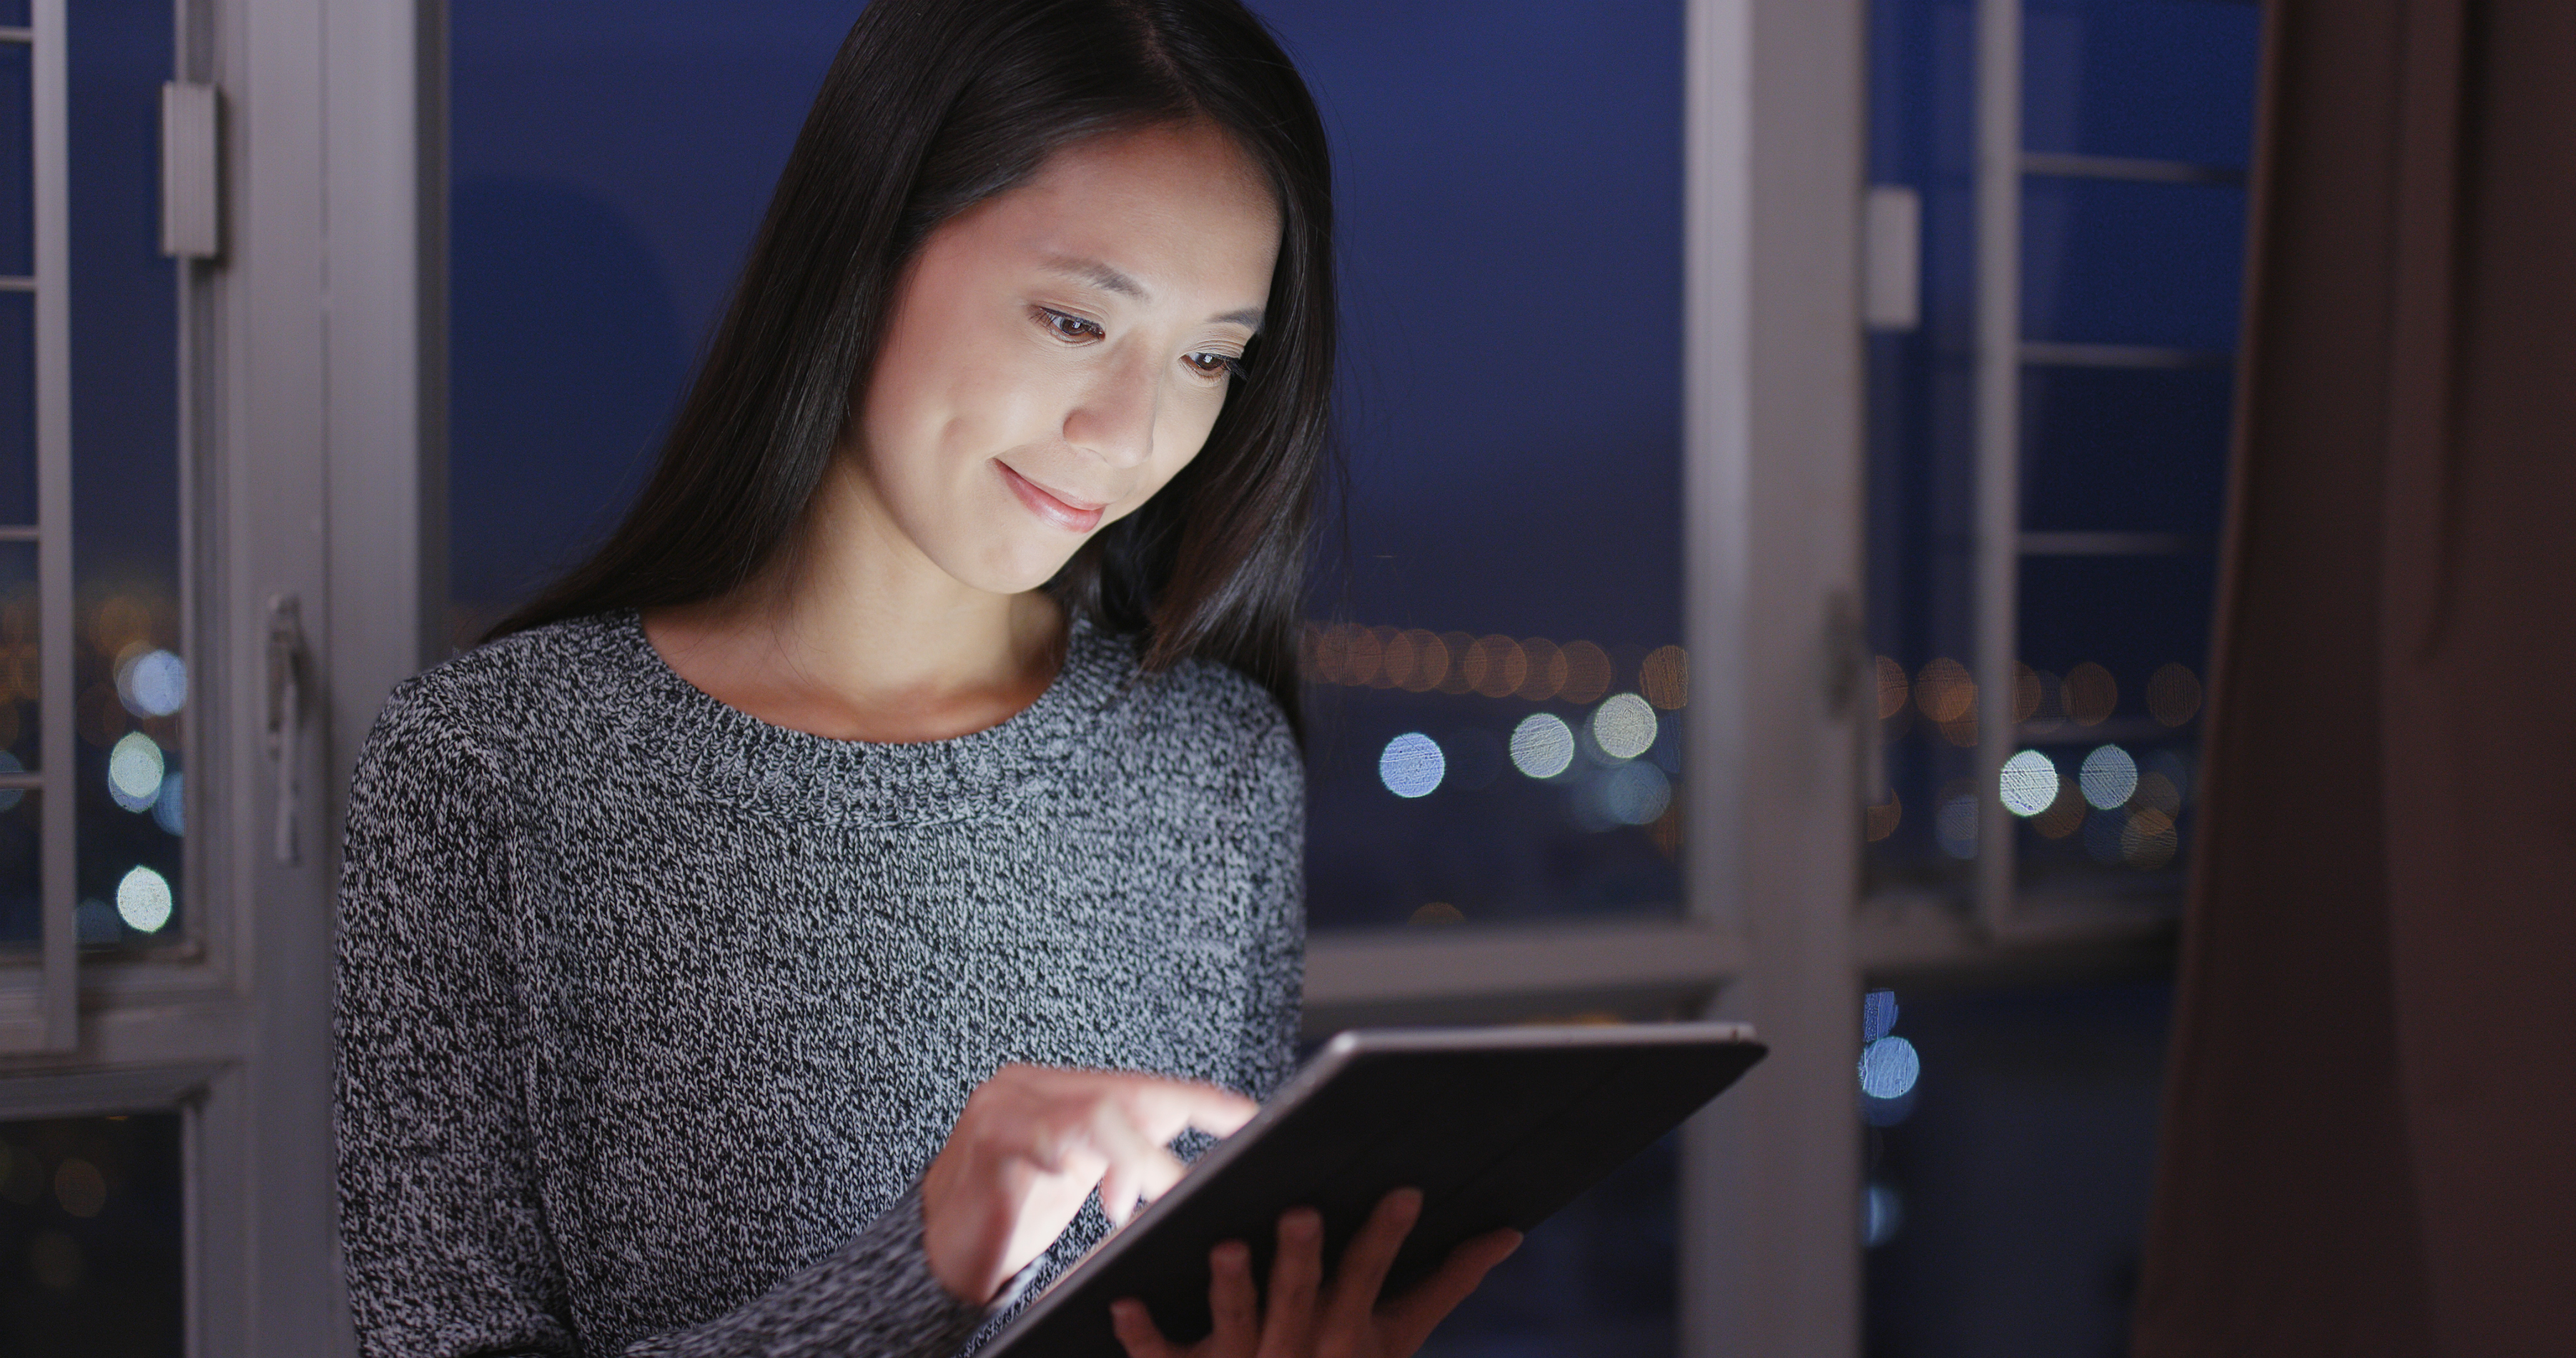 A woman watching training video on an tablet PC